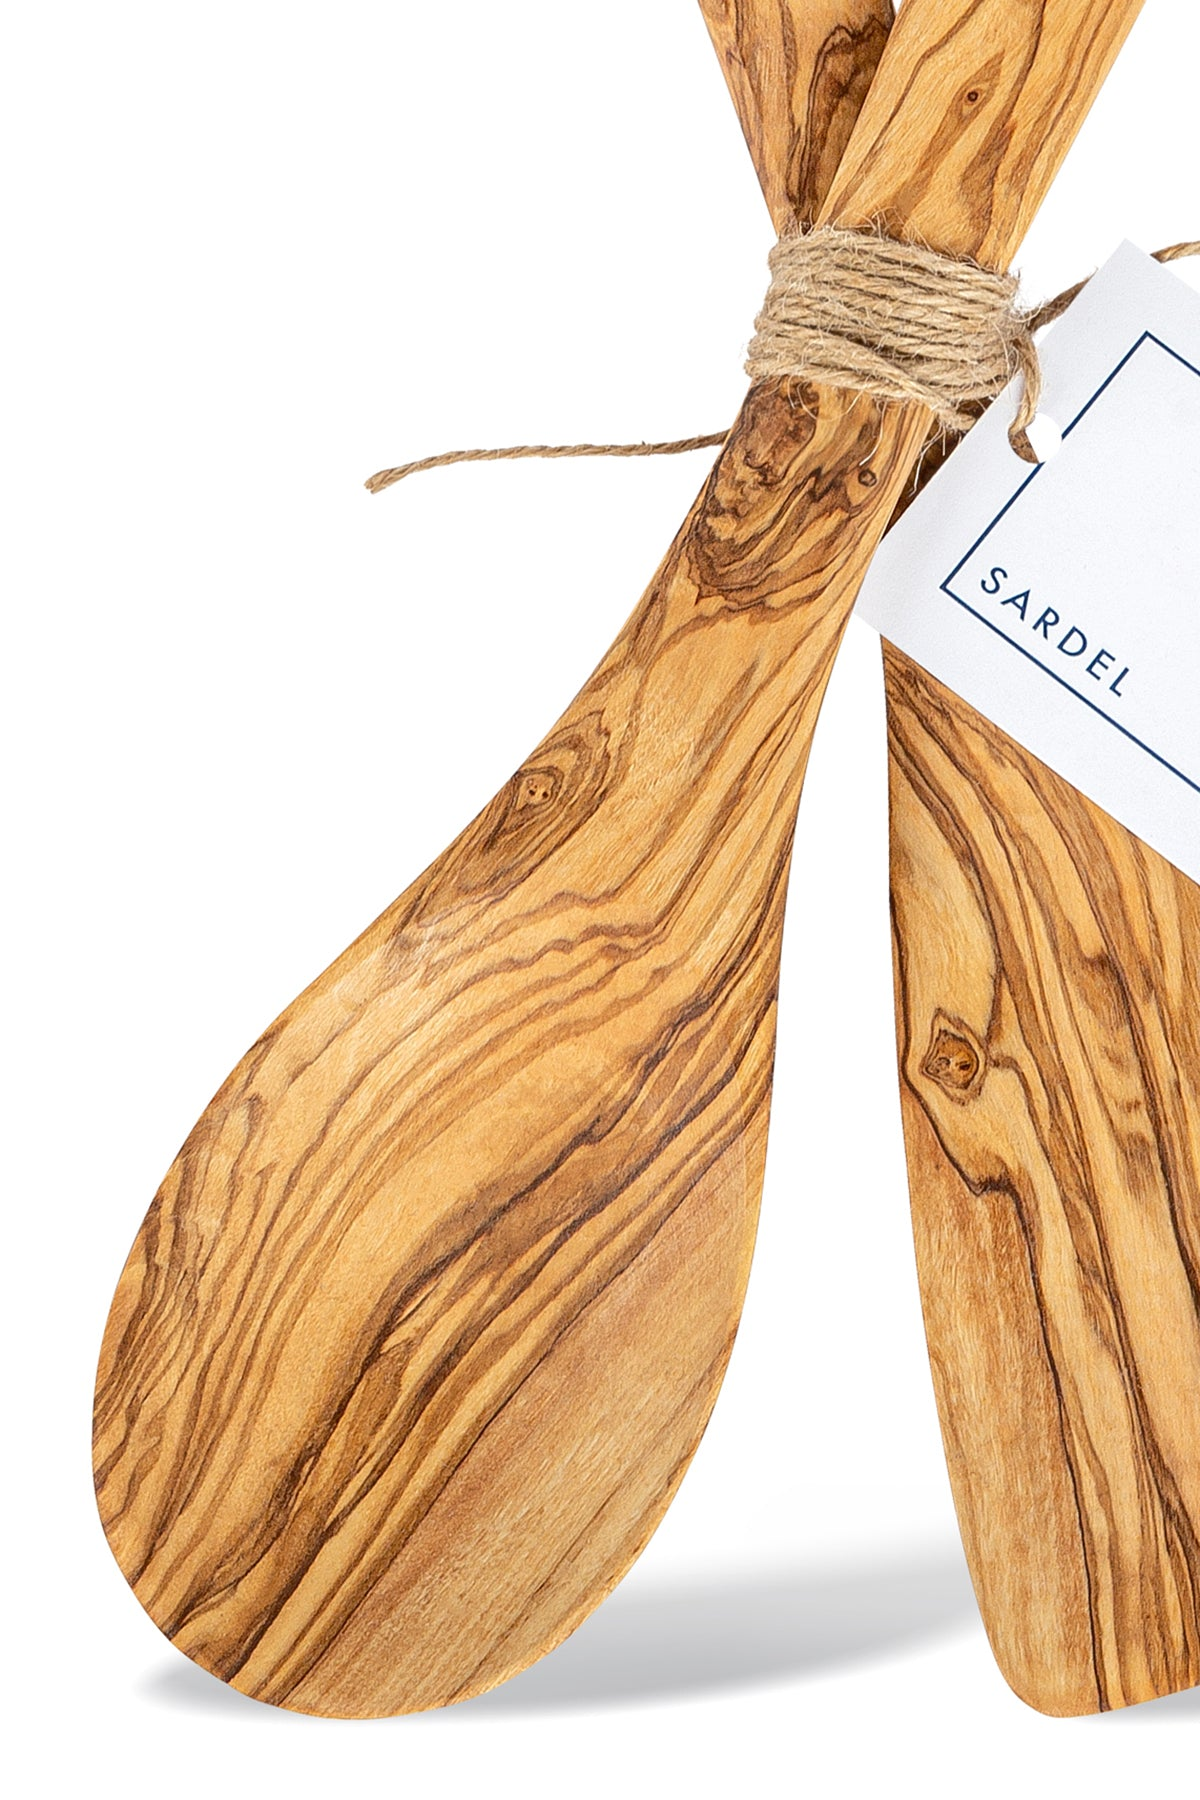 OLIVE WOOD UTENSILS BY SARDEL